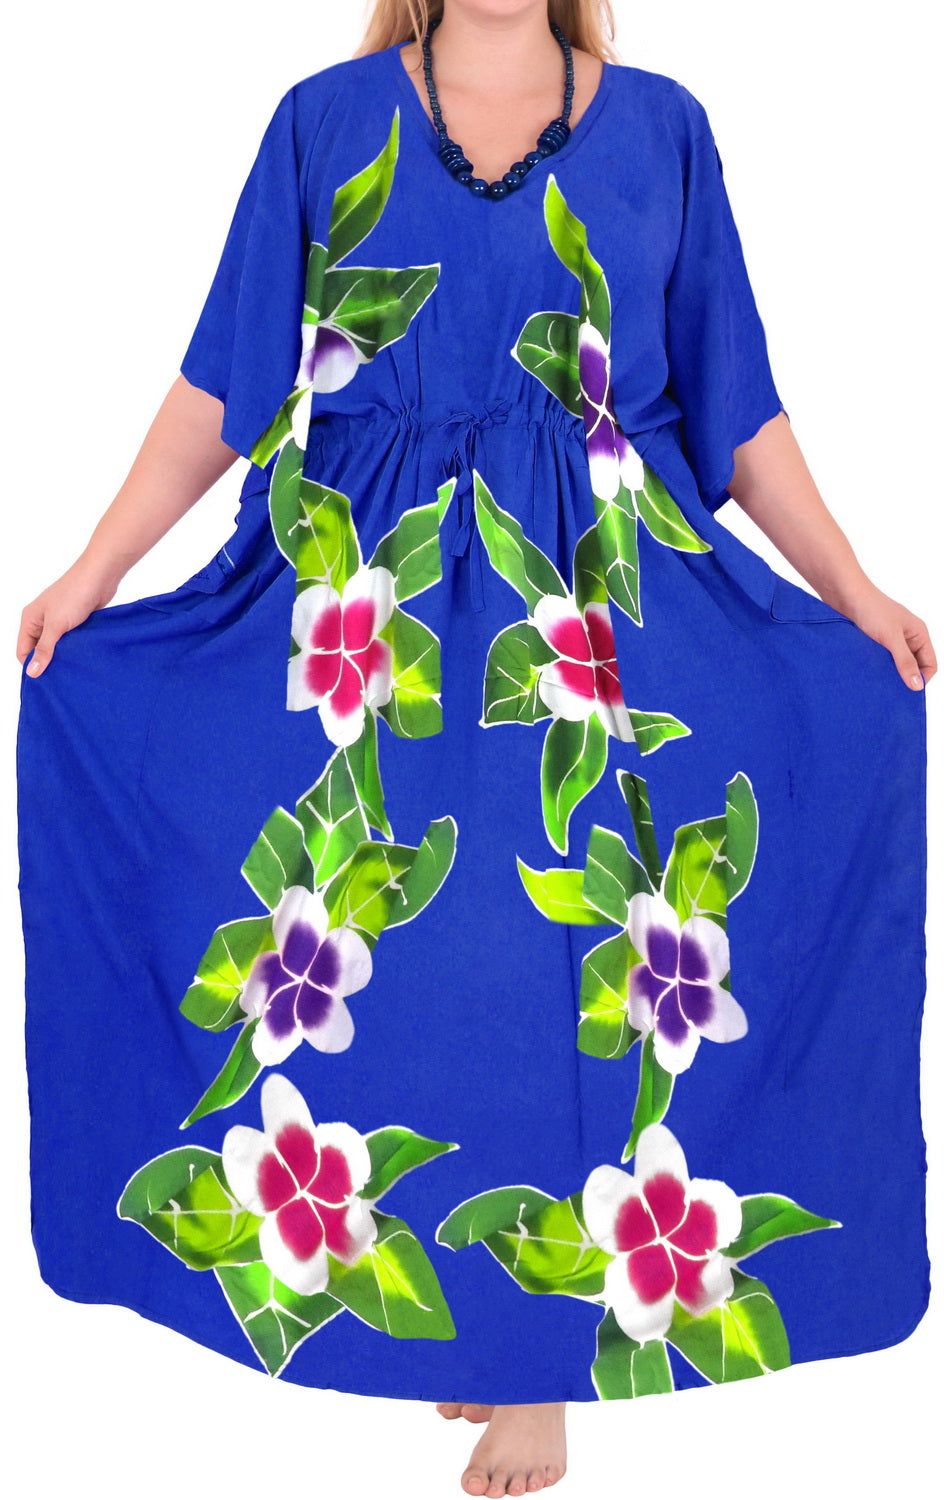 Women's Beachwear Swimwear Rayon Evening Swimsuit Caftan Casual Cover ups Blue